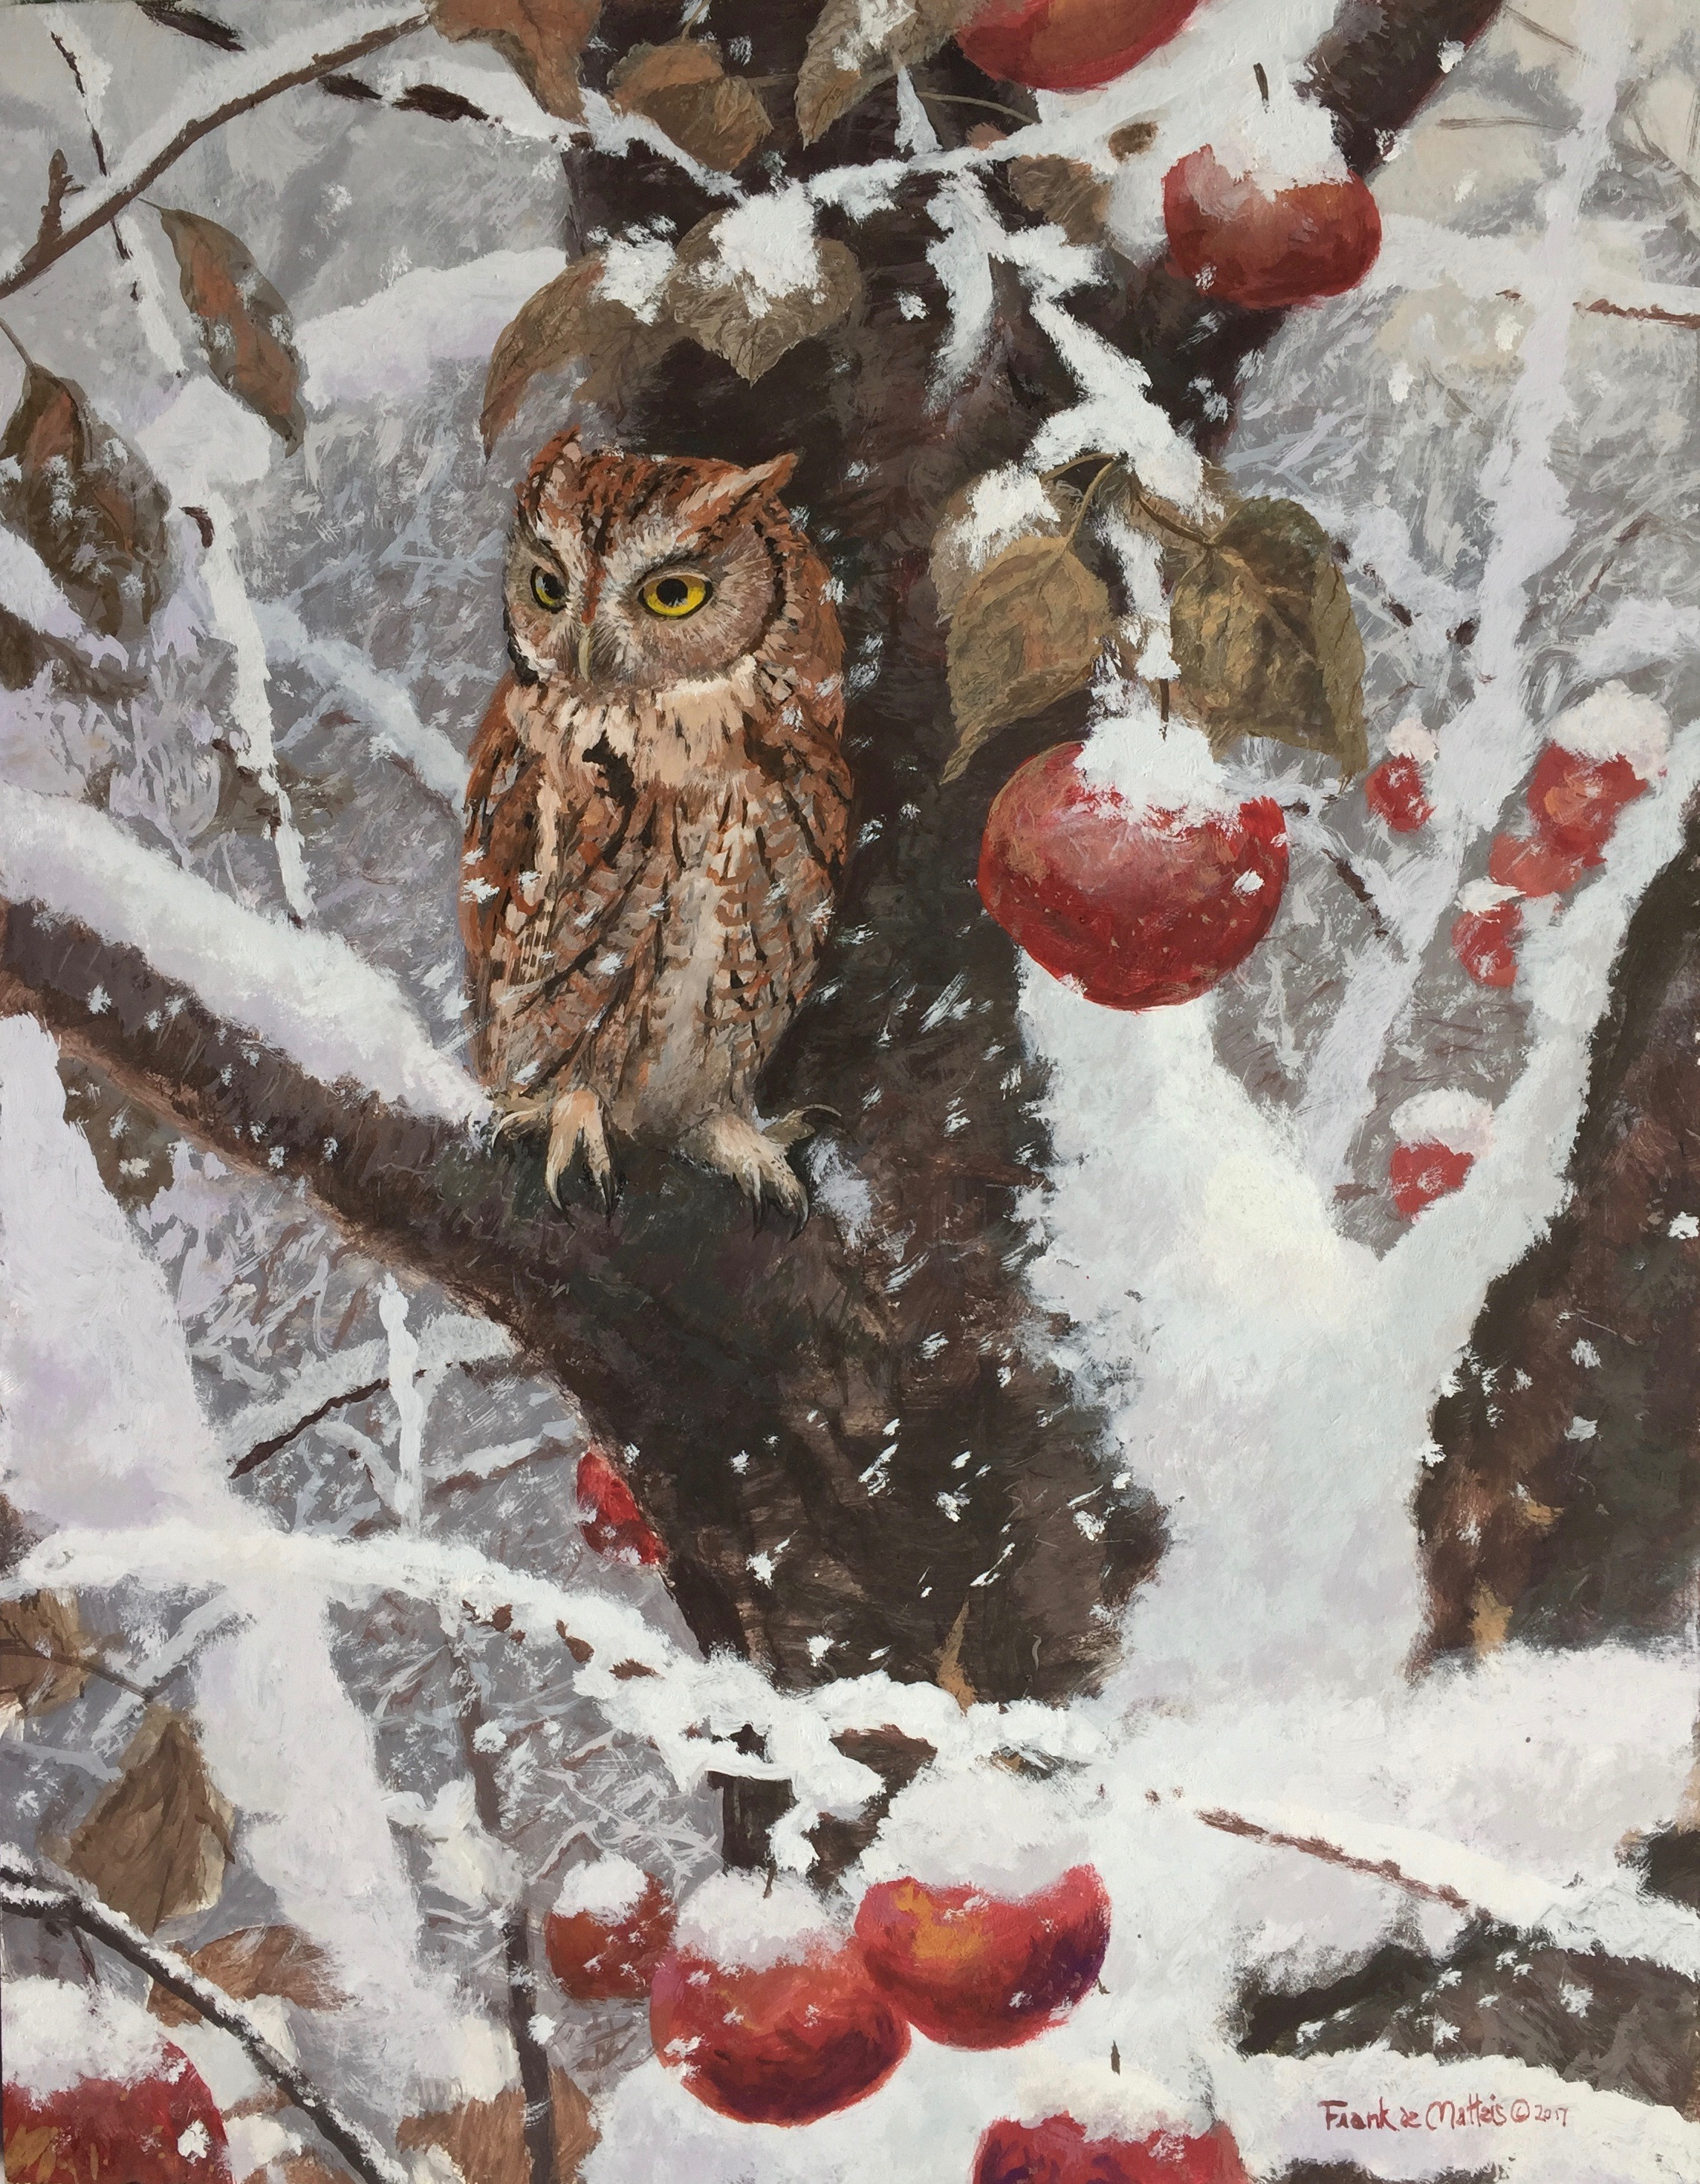 Screech owl and apples